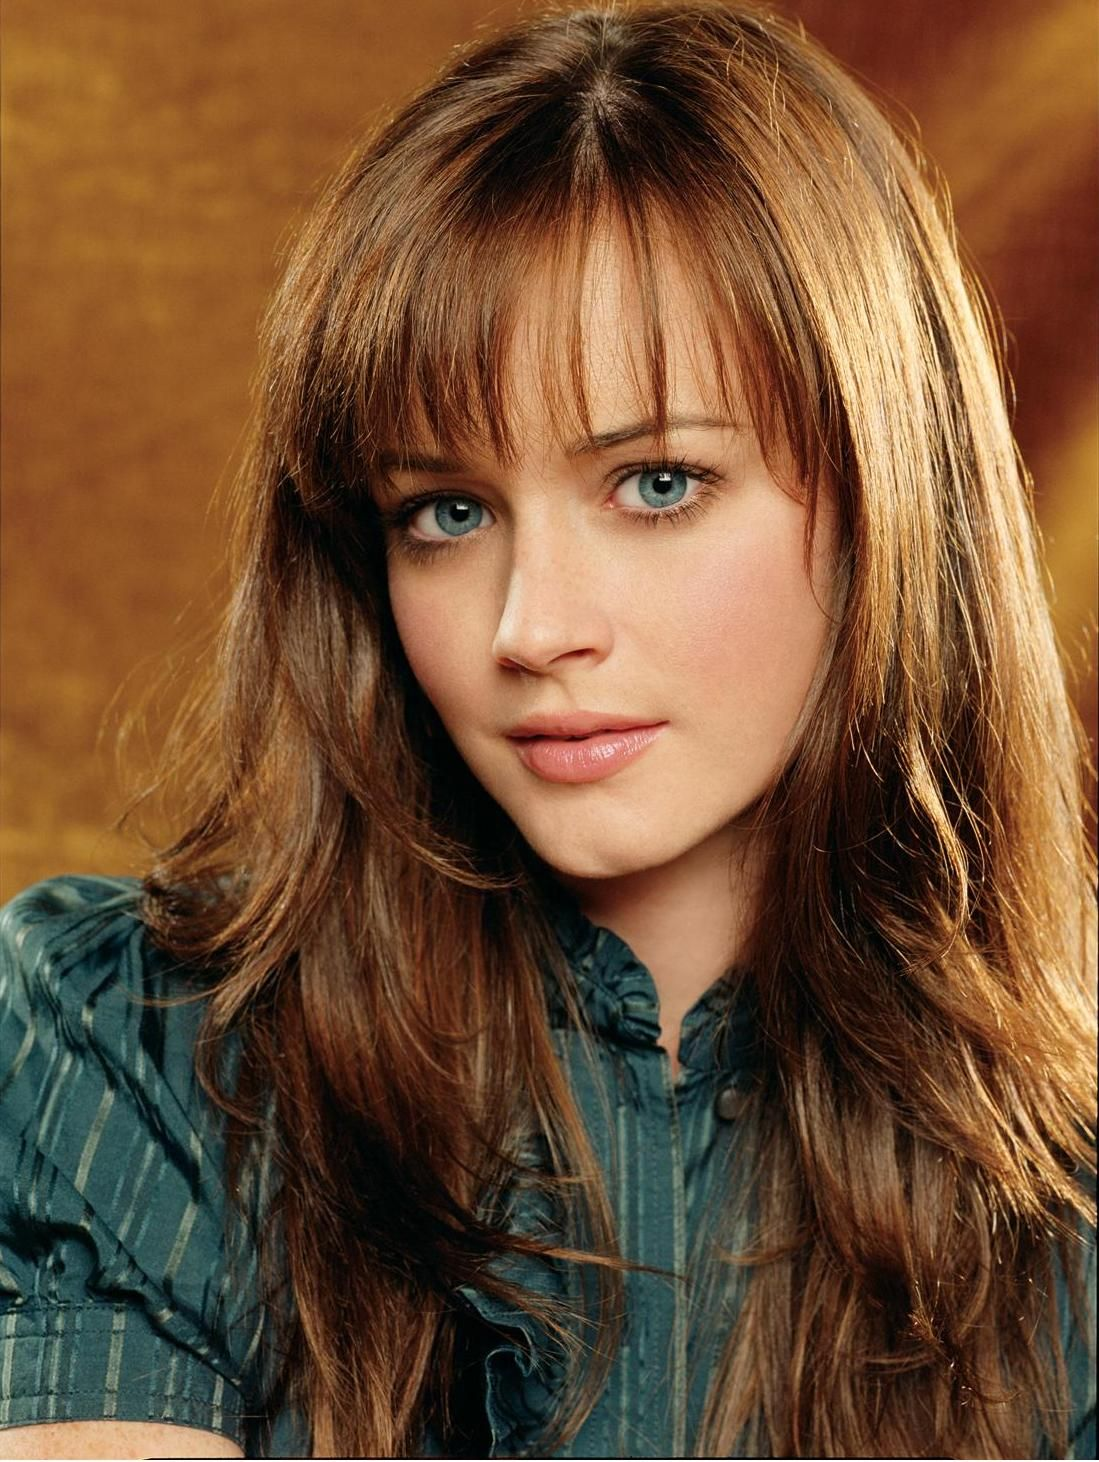 The Pale Brown Haired Girl With Blue Eyes Too Big For Her Face